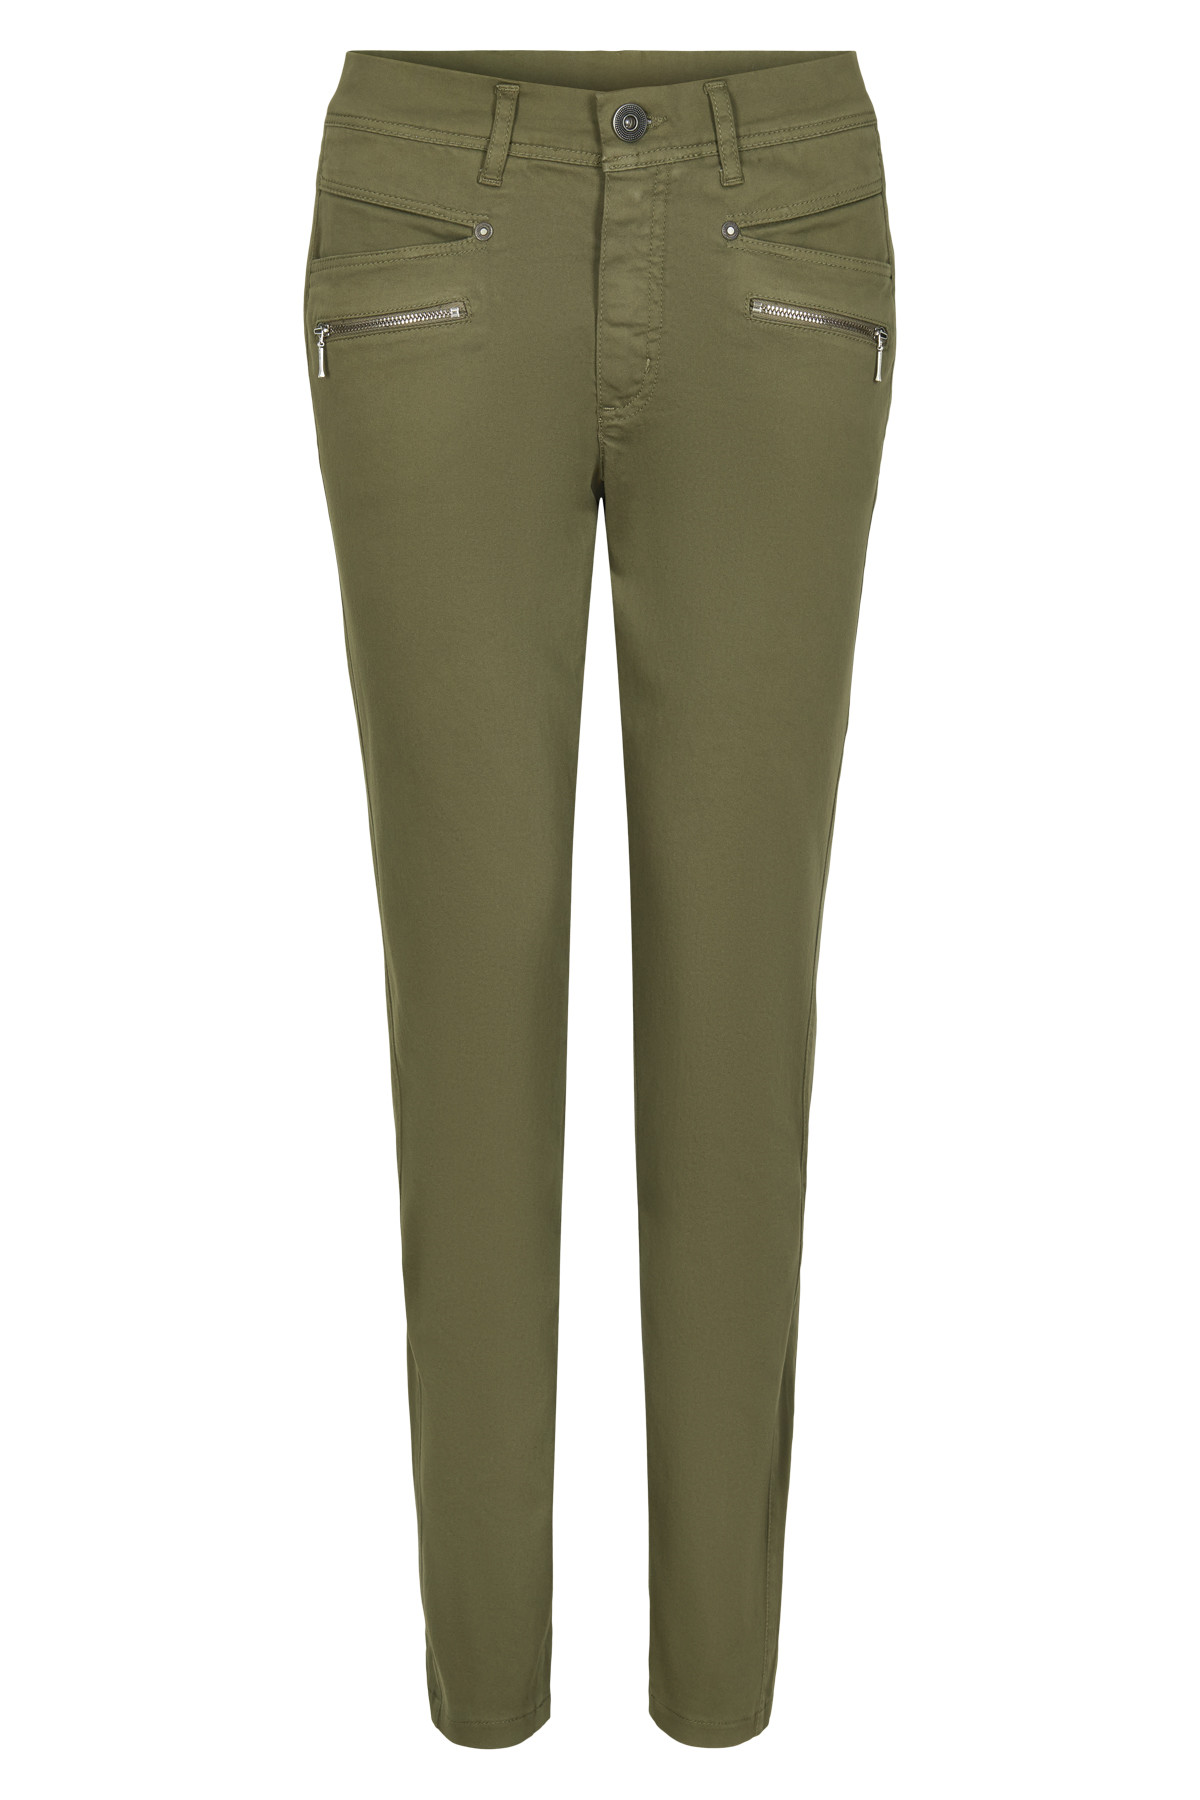 Image of 2BIZ RANY PANTS 43654 (Khaki, 42)